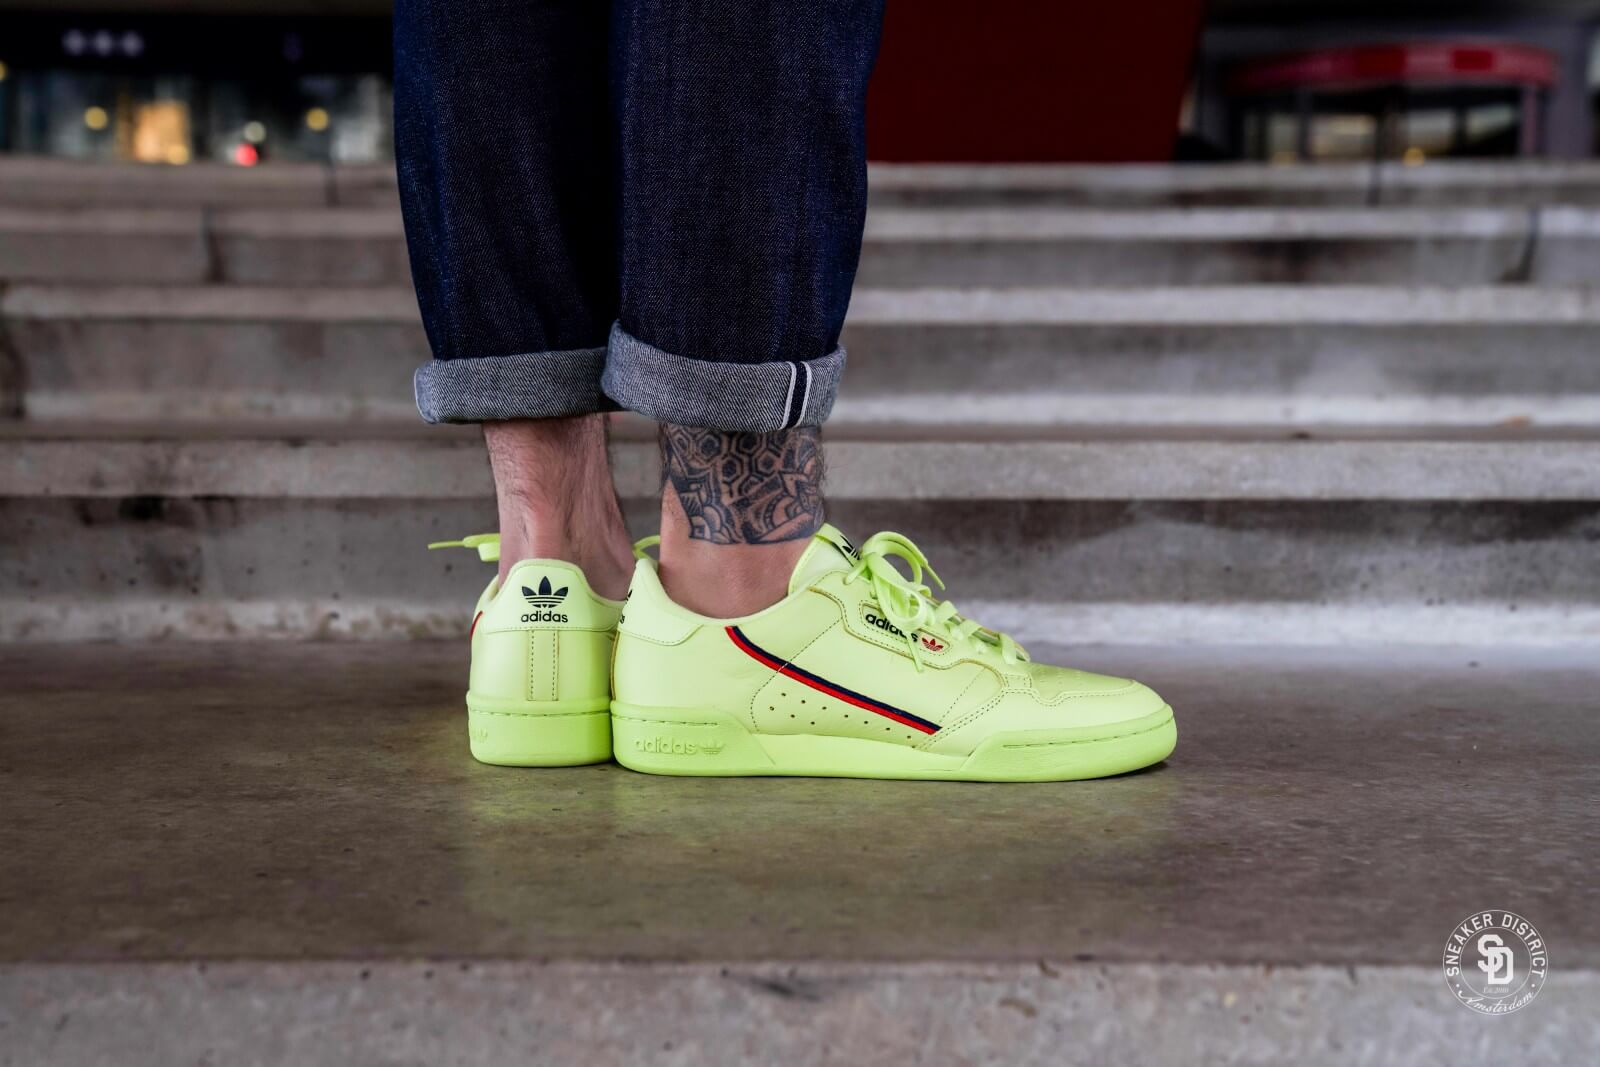 Adidas Continental 80 Semi Frozen Yellow/Scarlet - B41675